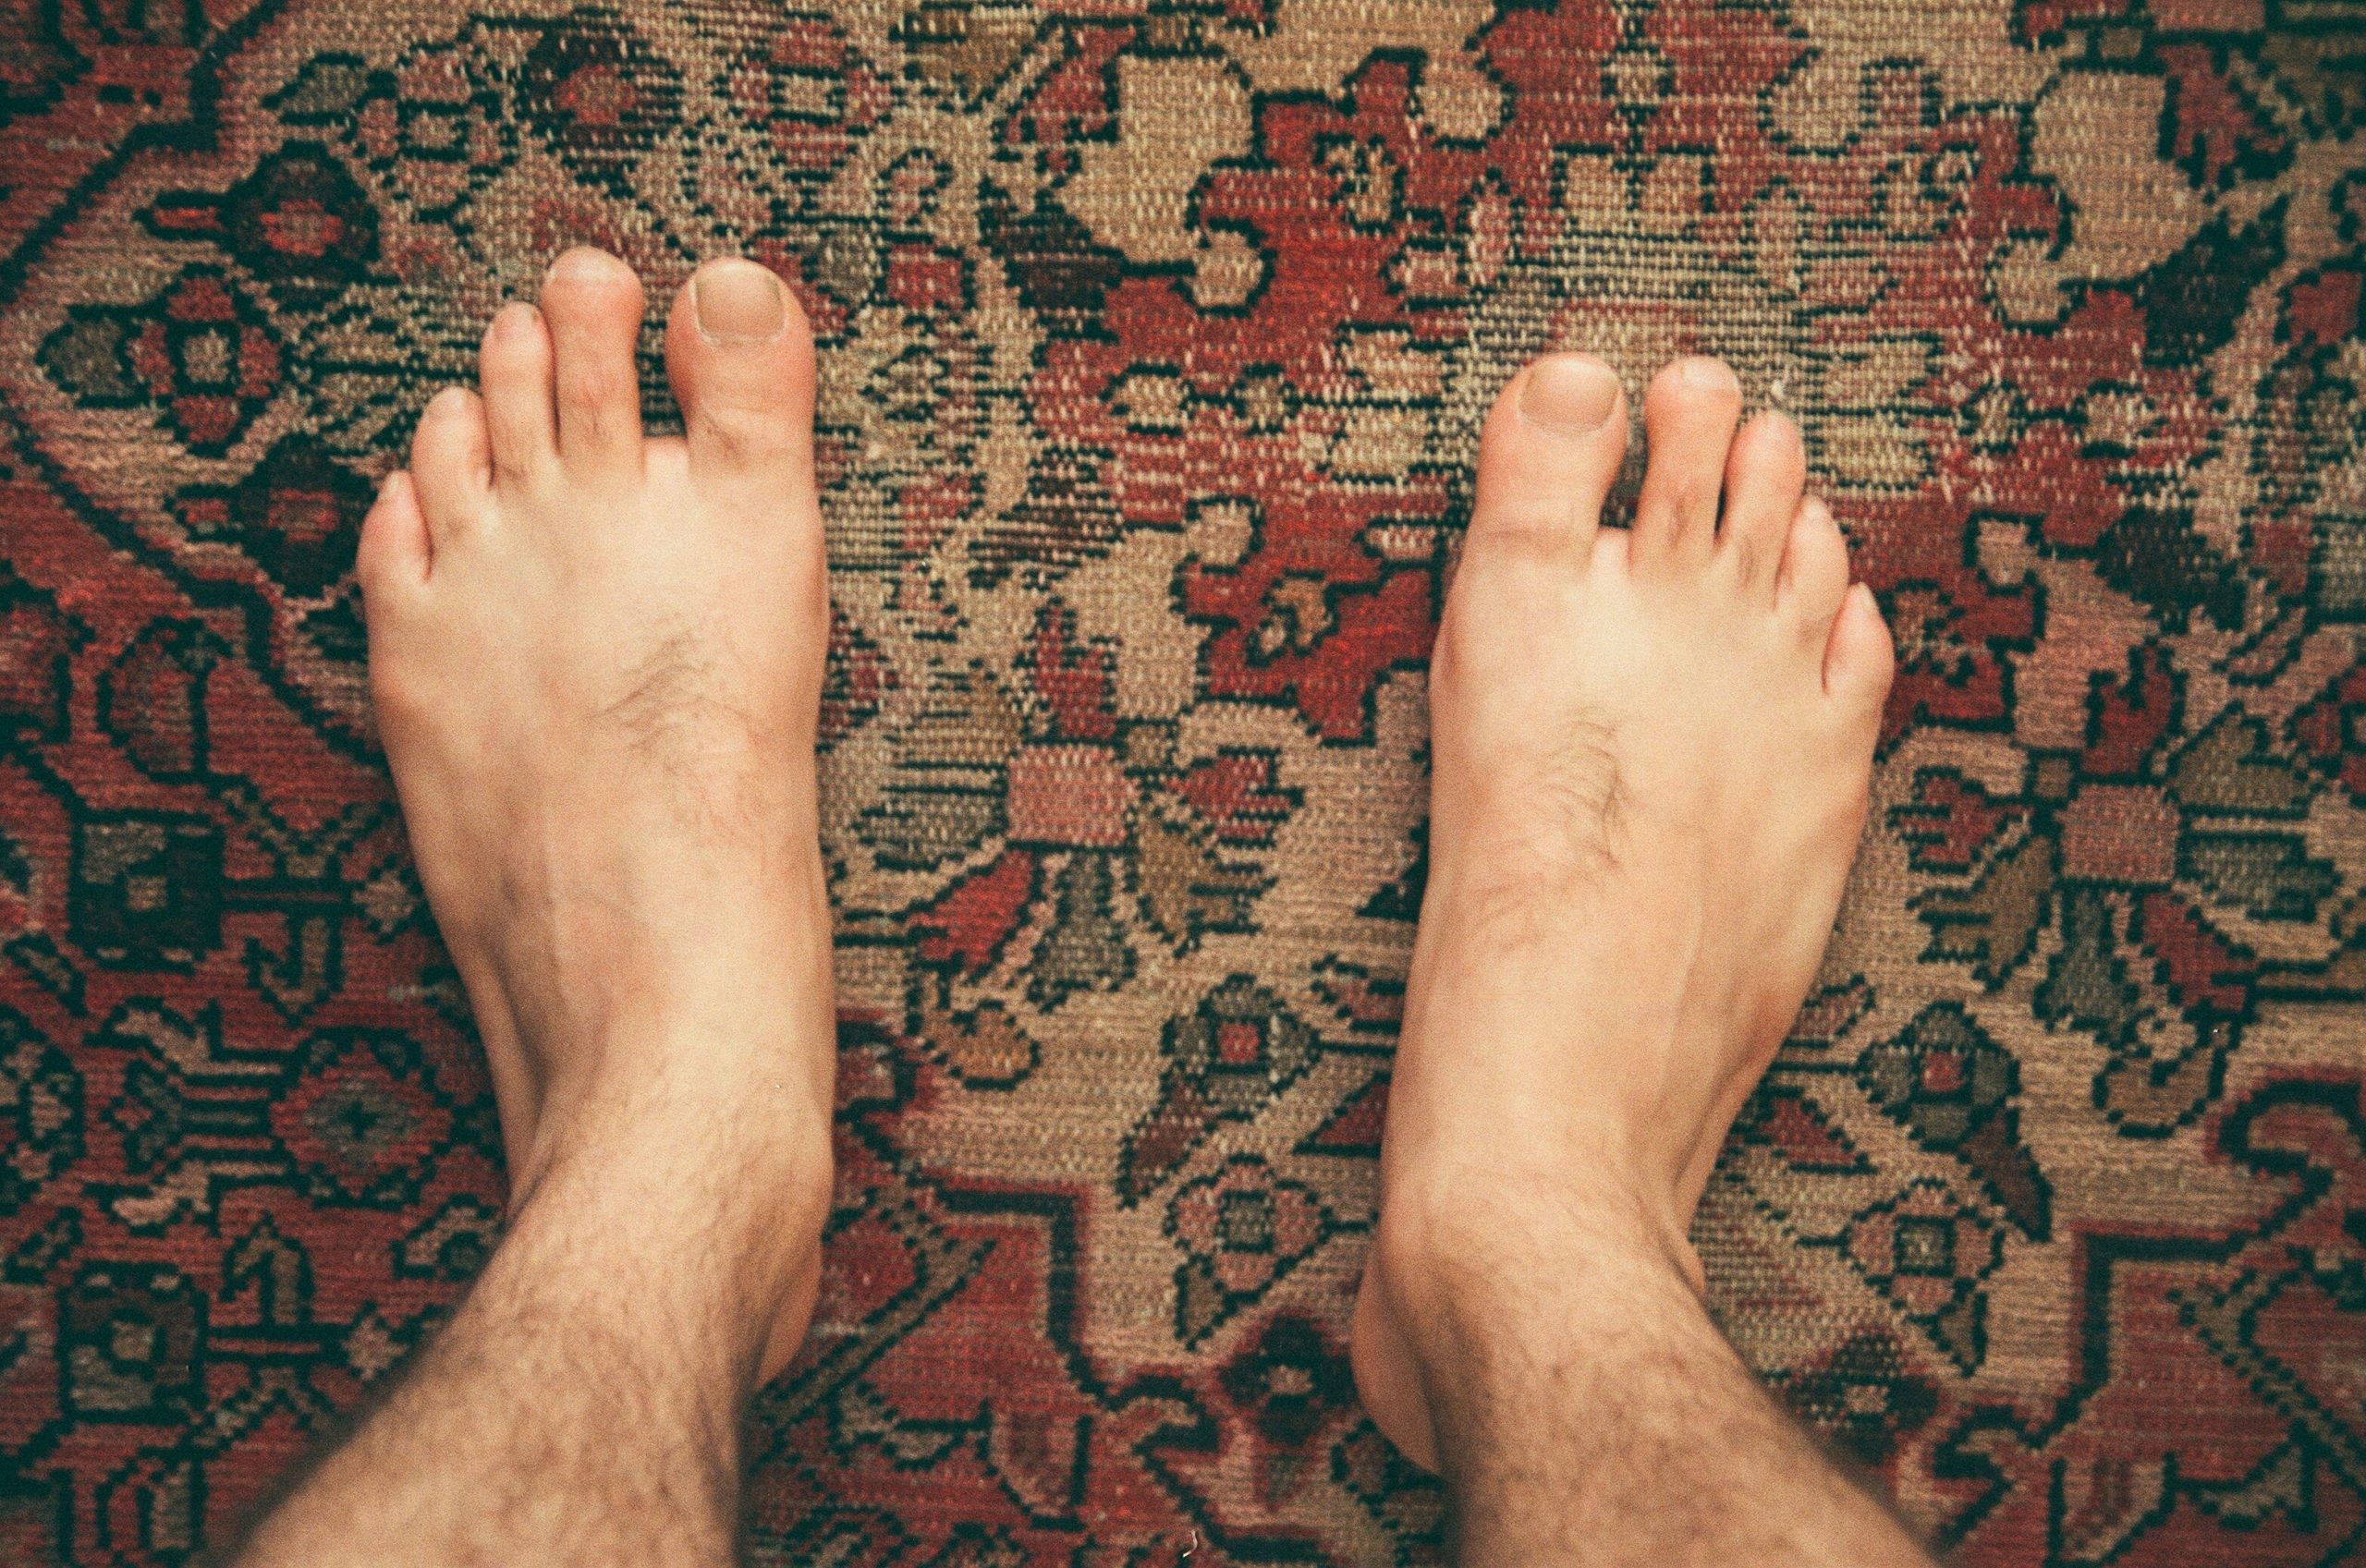 Taking a Trip to Ankle Sprains